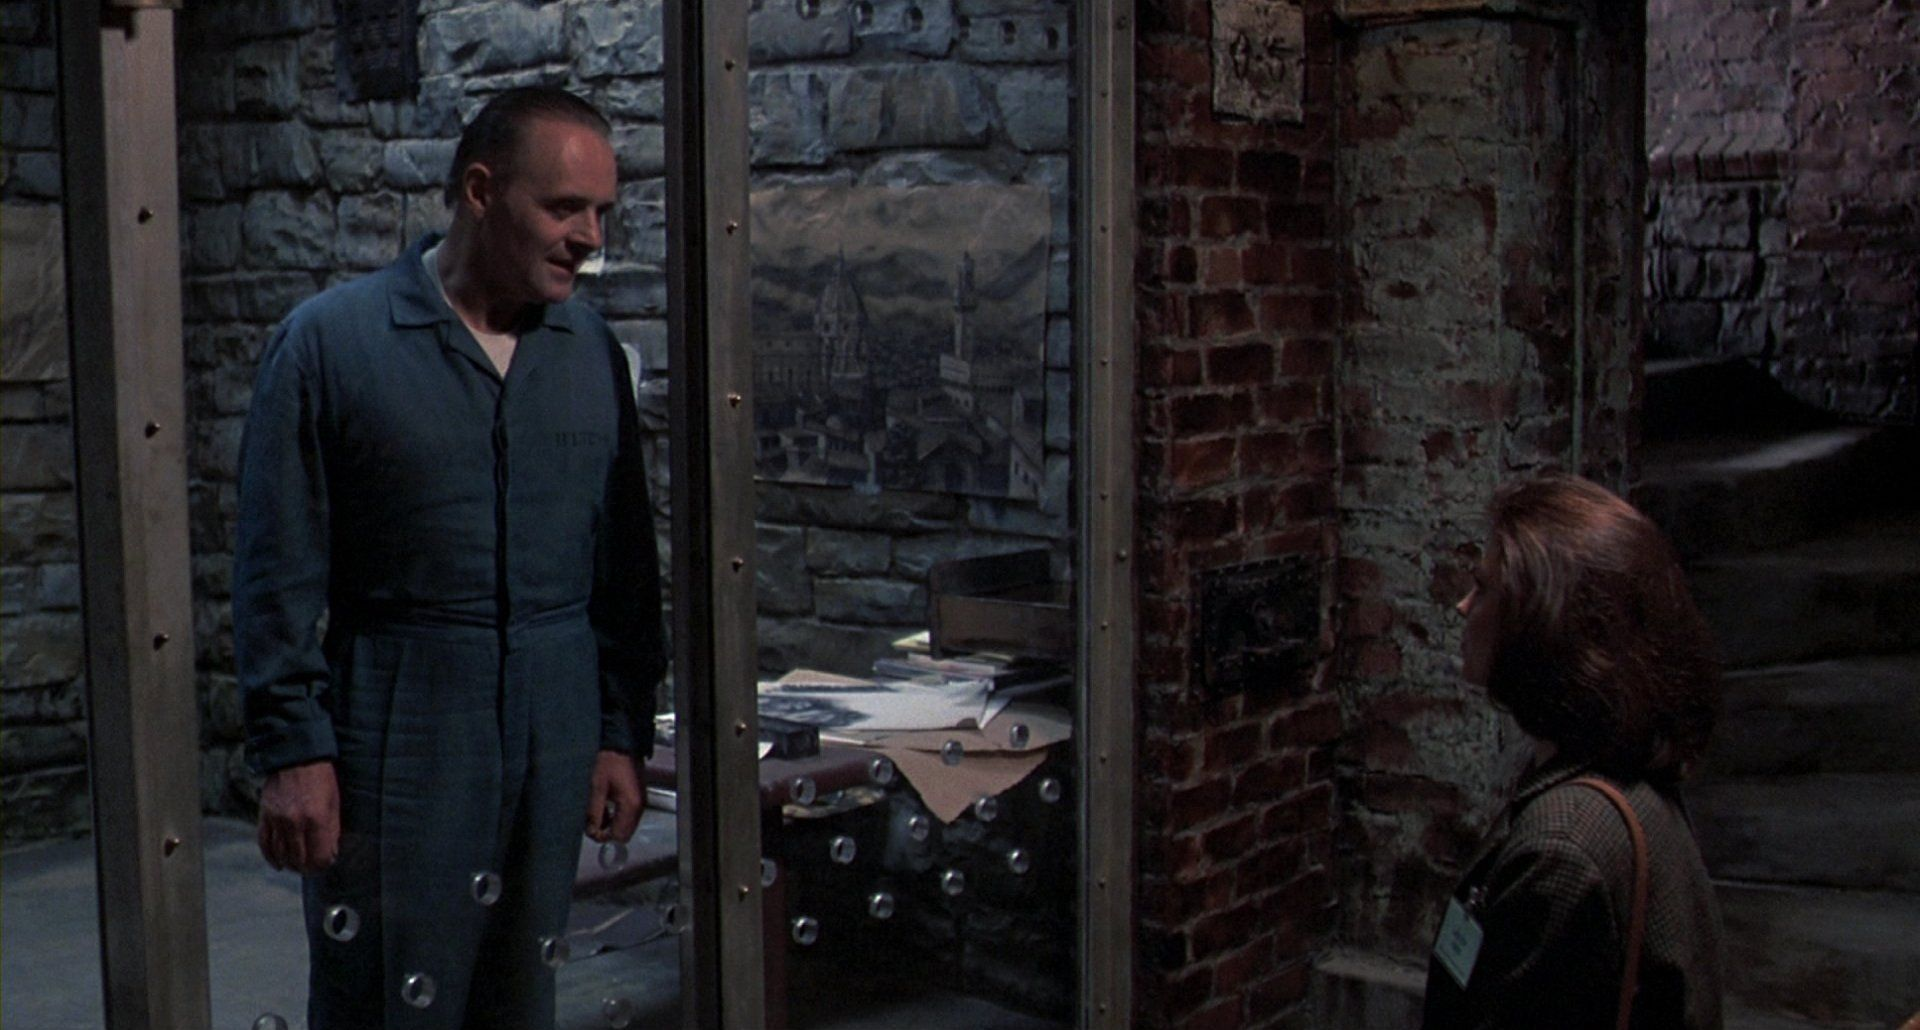 Silence Of The Lambs Clarice Starling Hannibal Lecter Has - Silence of the lambs basement